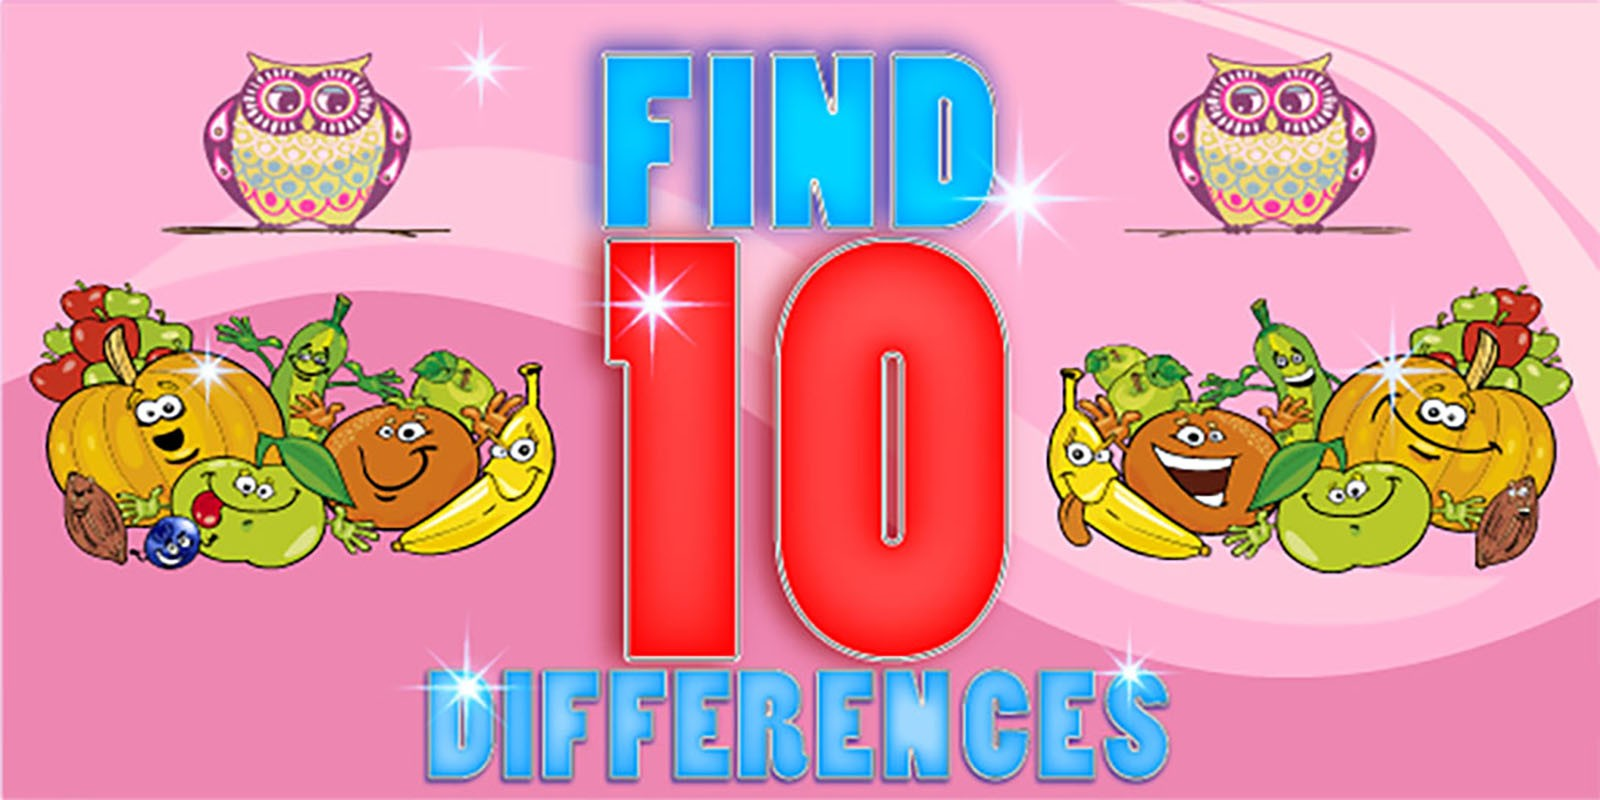 Find 10 Differences - Unity Game Source Code